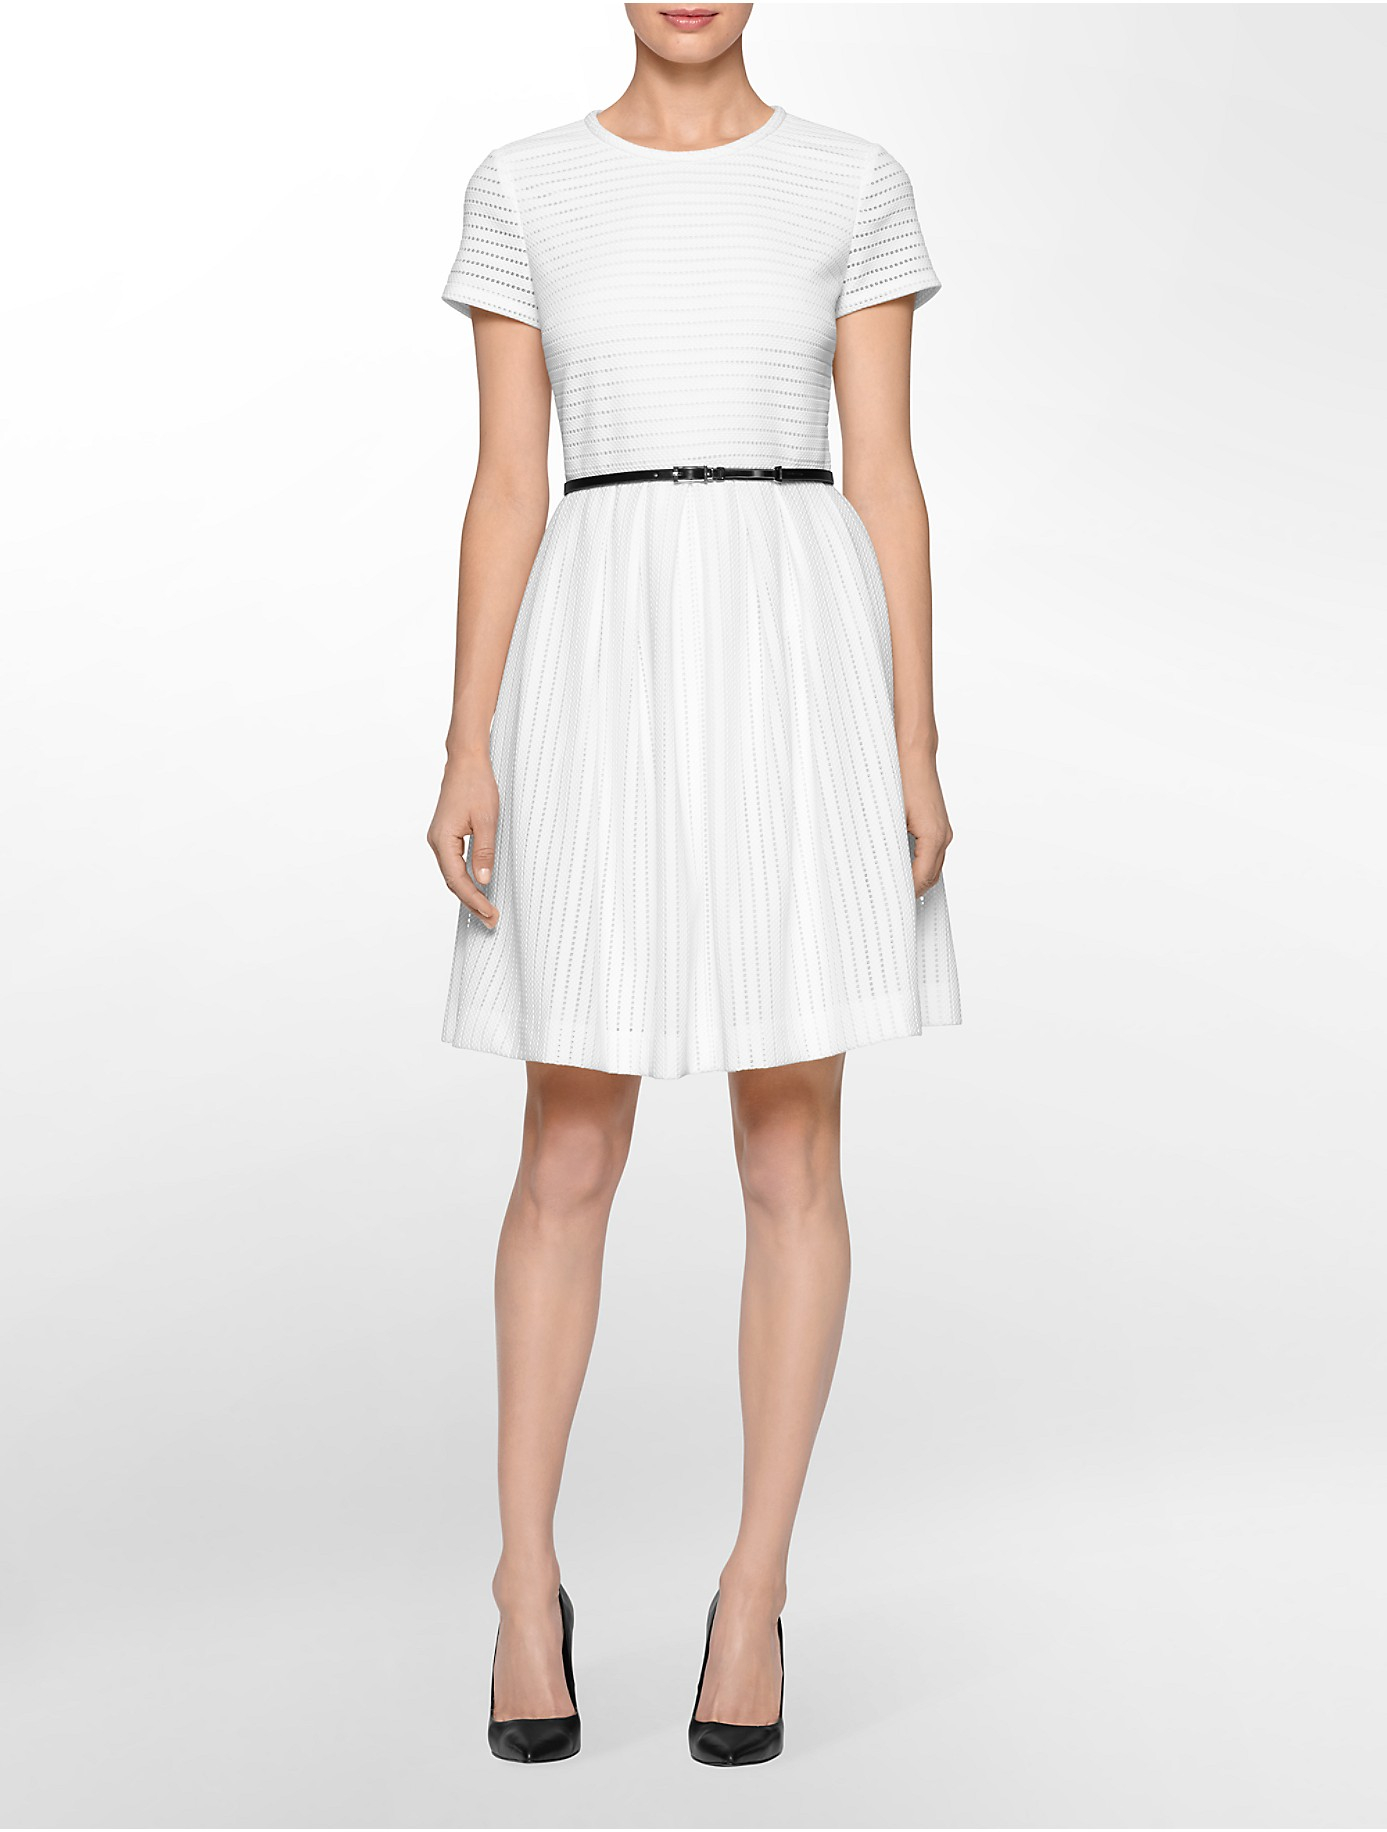 Calvin Klein White Label Perforated Belted Short Sleeve